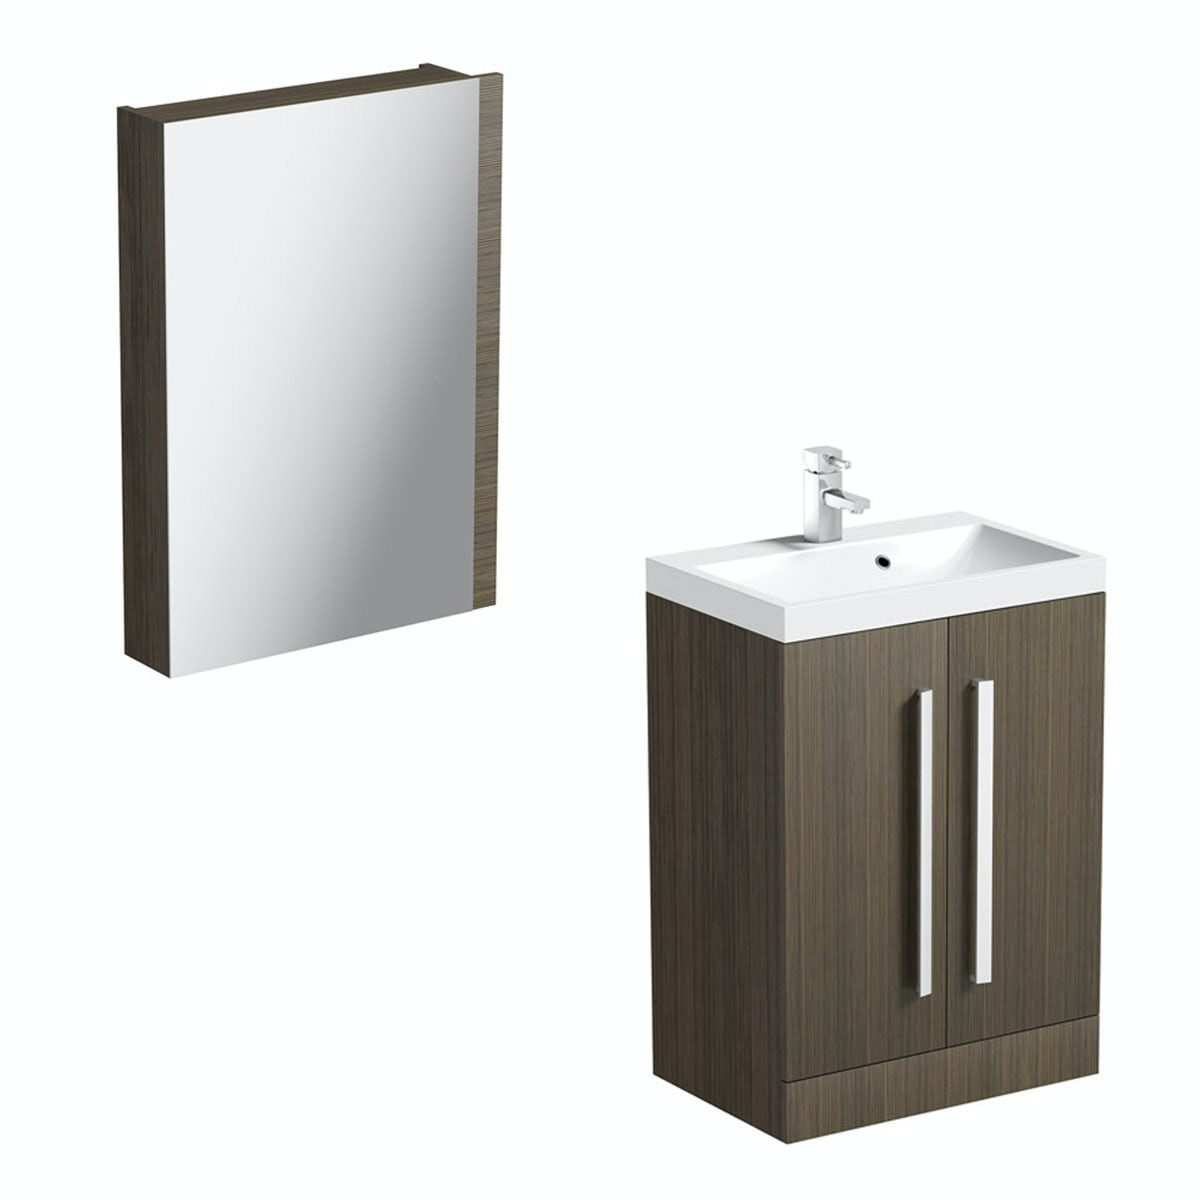 Orchard Wye walnut vanity unit and mirror offer 600mm